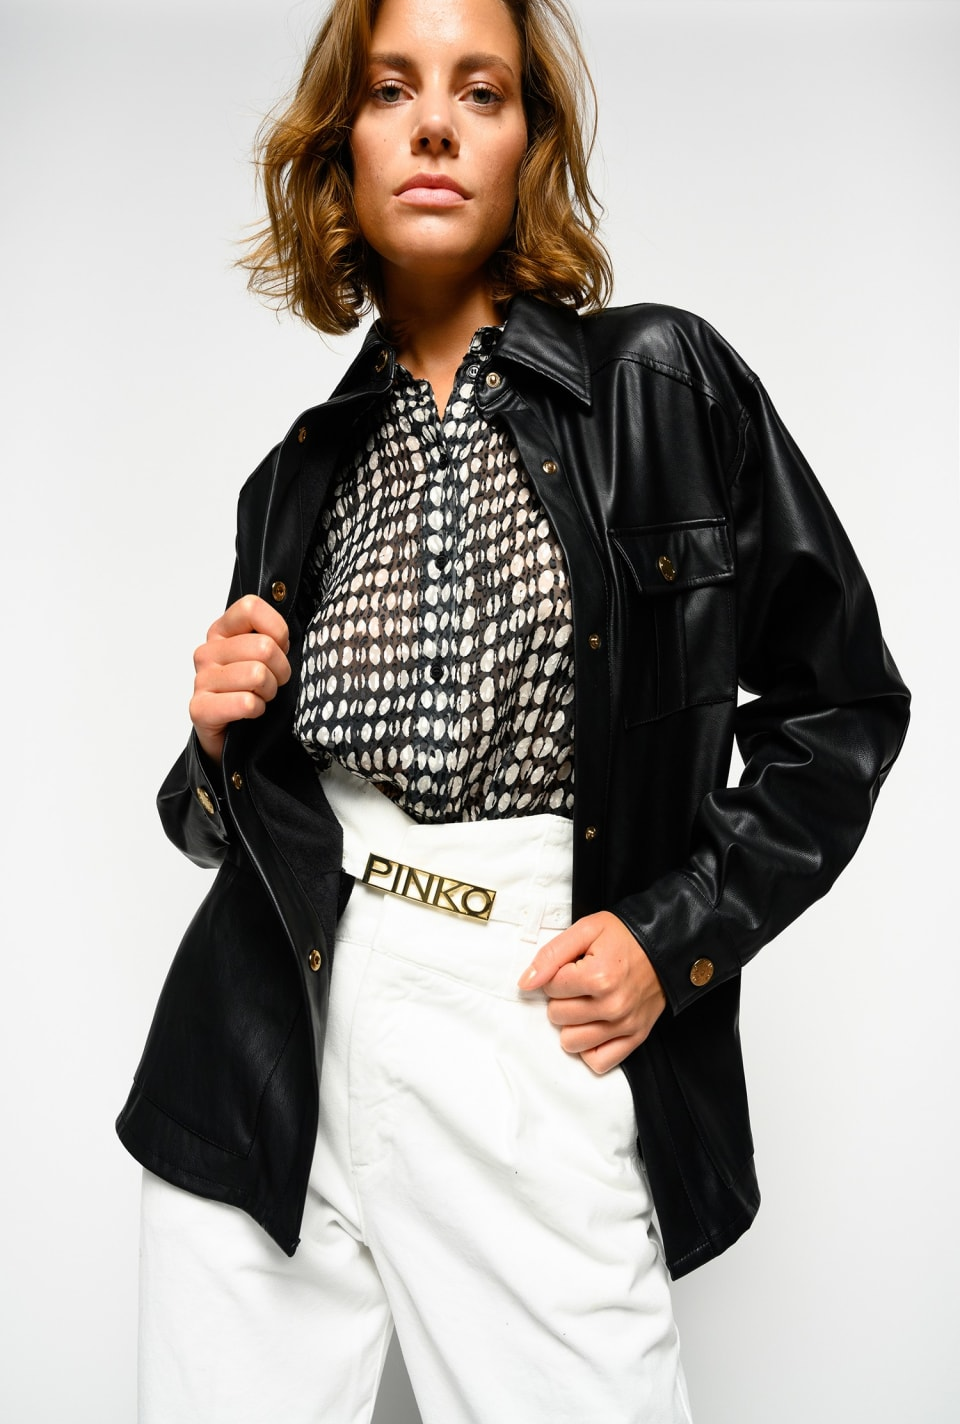 Leather-look jacket - Pinko